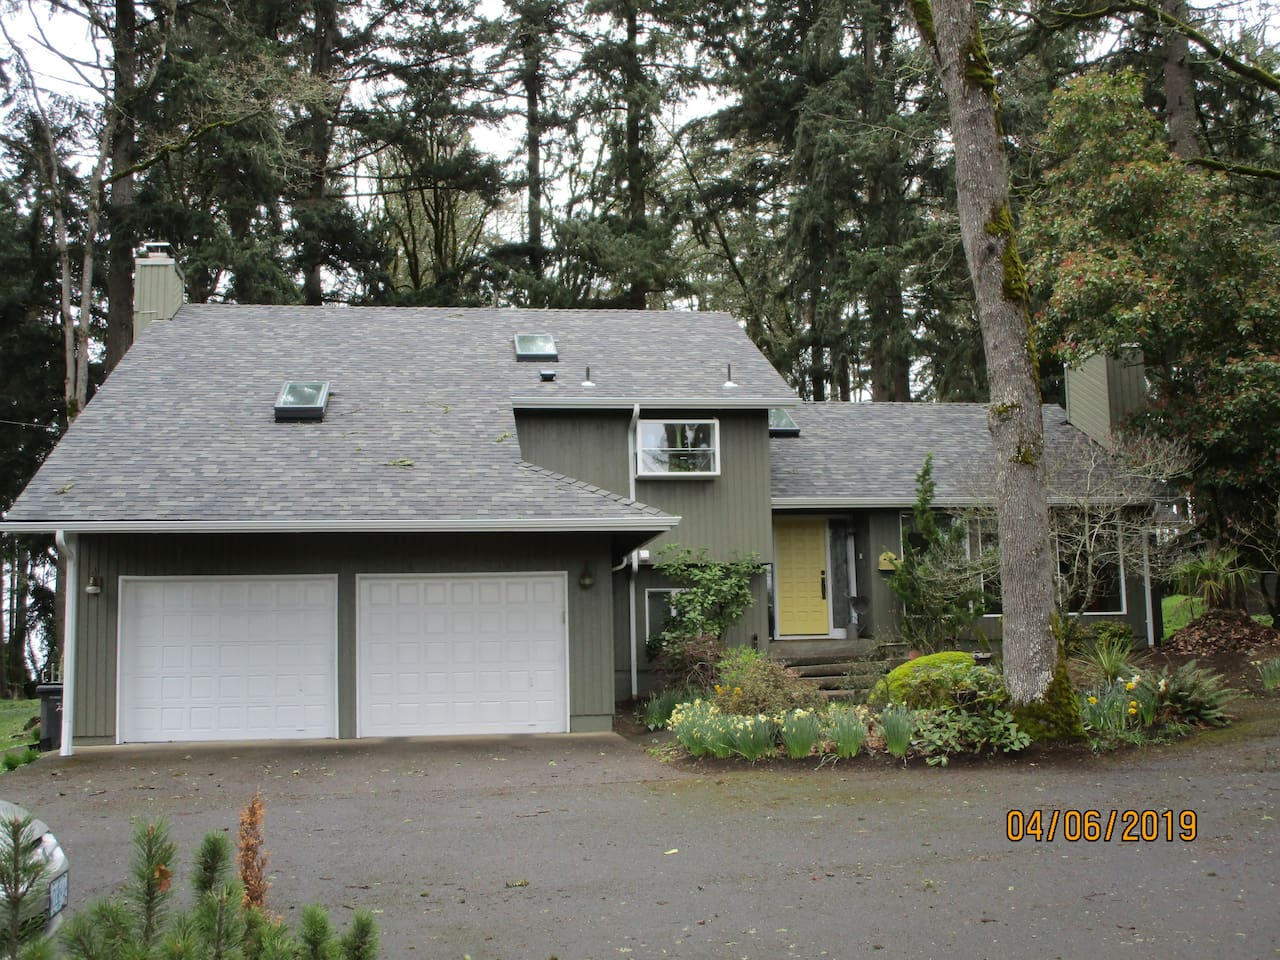 Private home one mile from Oregon Garden entry. Plenty of parking